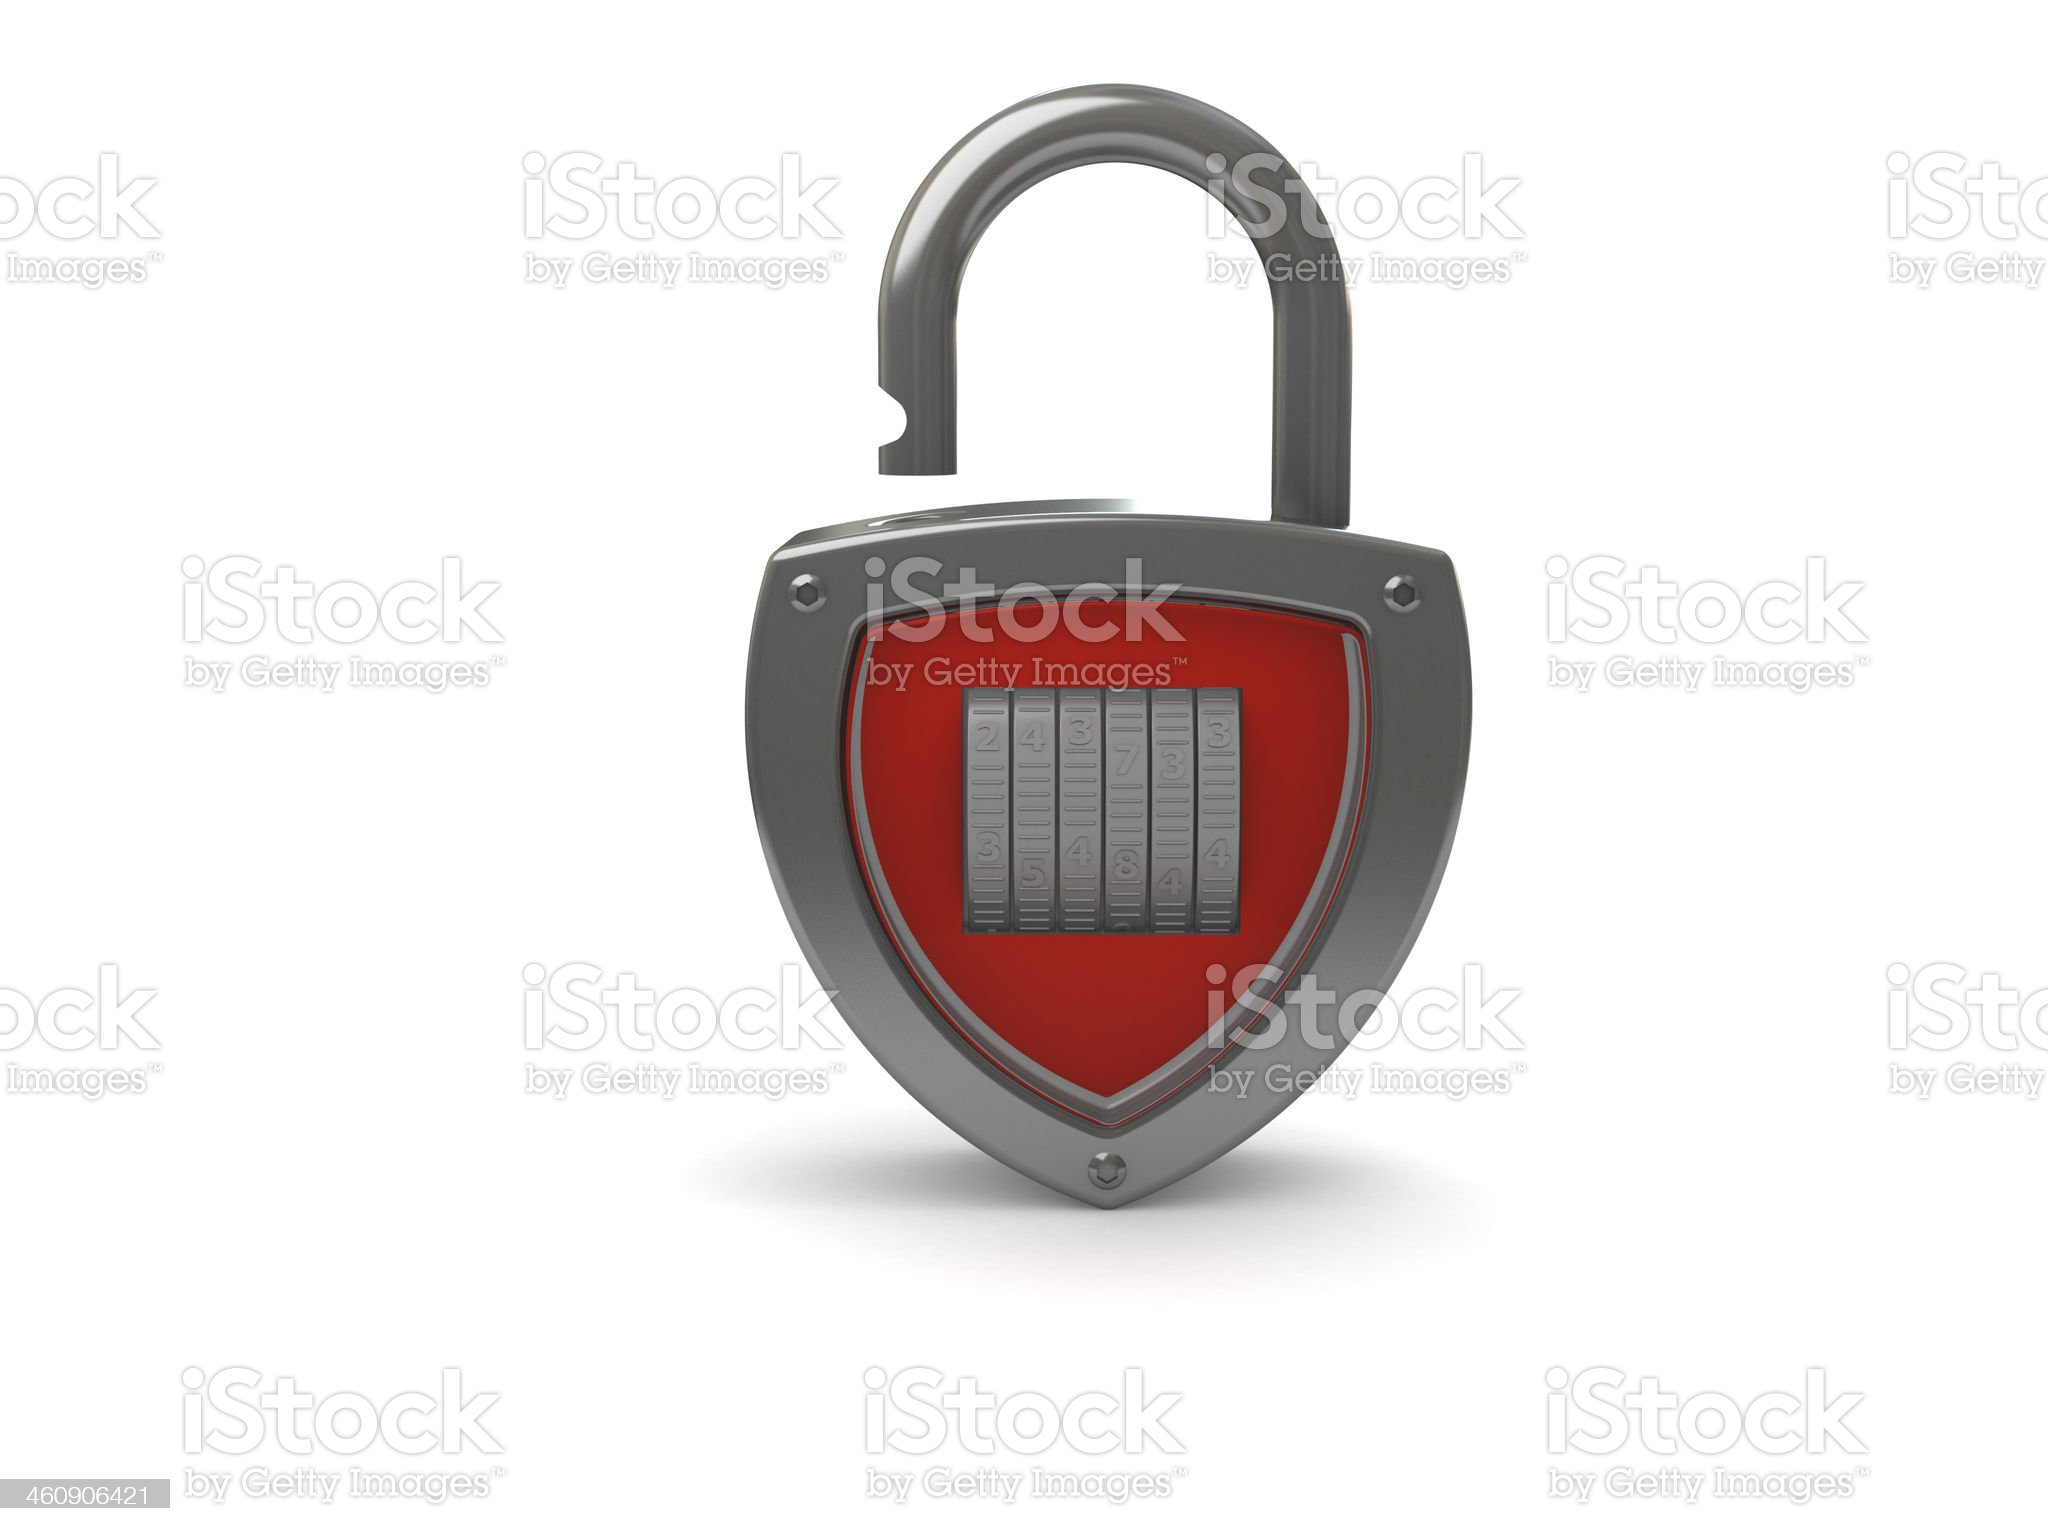 Padlock concept royalty-free stock photo